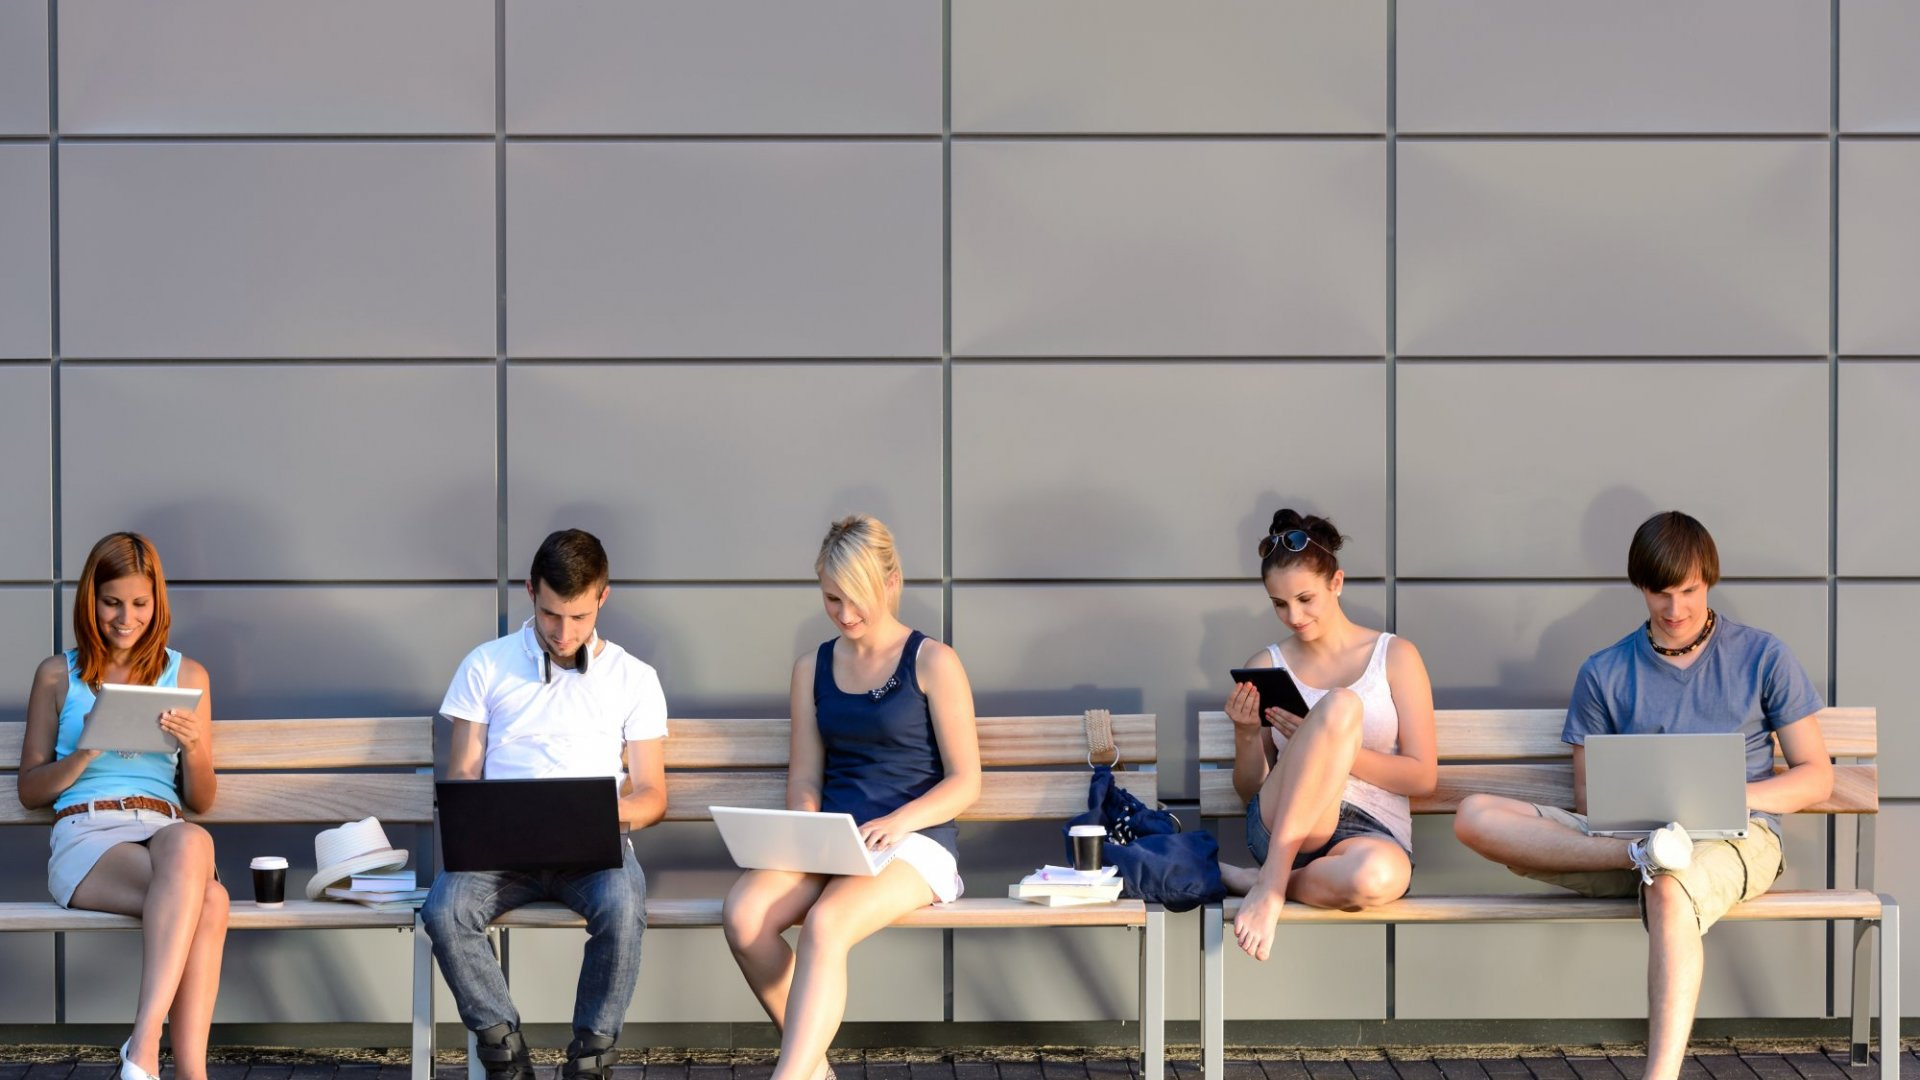 The 5 Most Underappreciated Skills of Millennial Workers